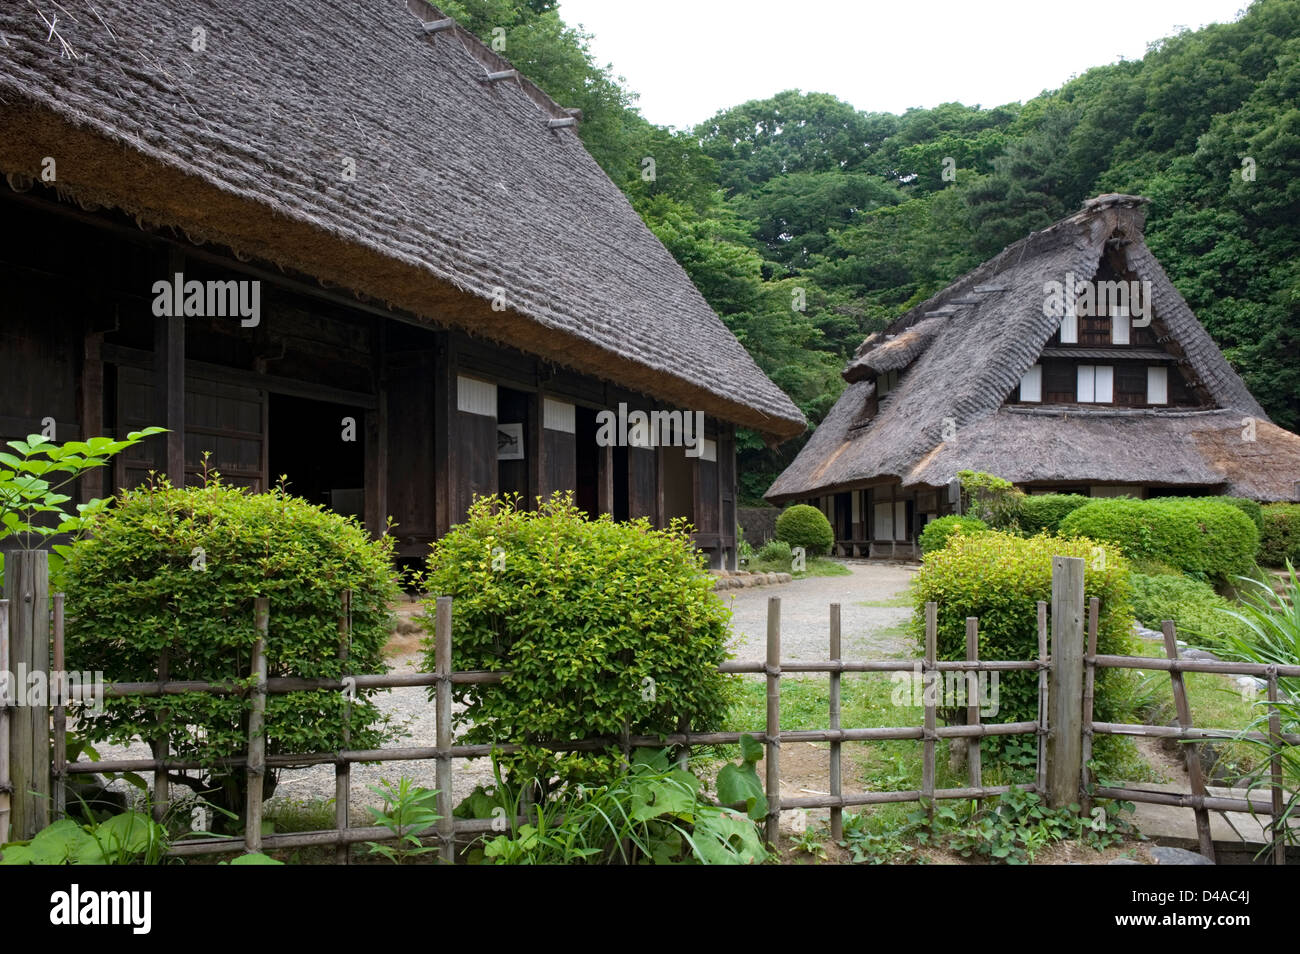 Thatched roof historic village farm residences at Nihon Minkaen (Open-air Folk House Museum) in Kawasaki, Japan. - Stock Image